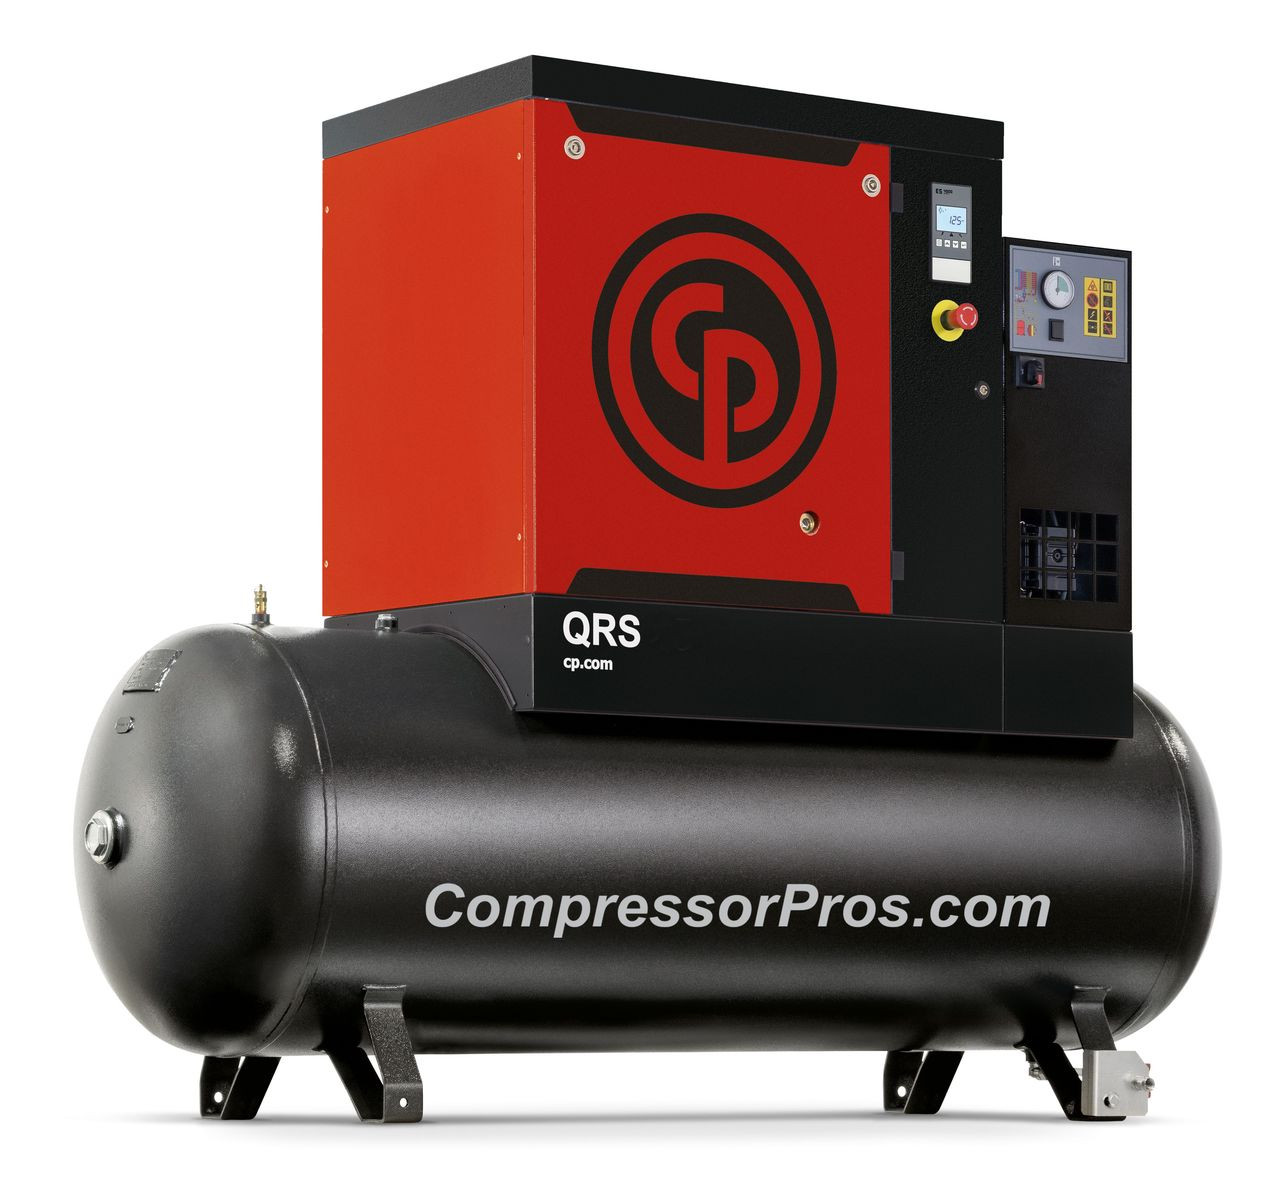 Chicago Pneumatic QRS15HPD-125 15 HP 125 psi 132 Gallon Rotary Screw Air Compressor with Dryer